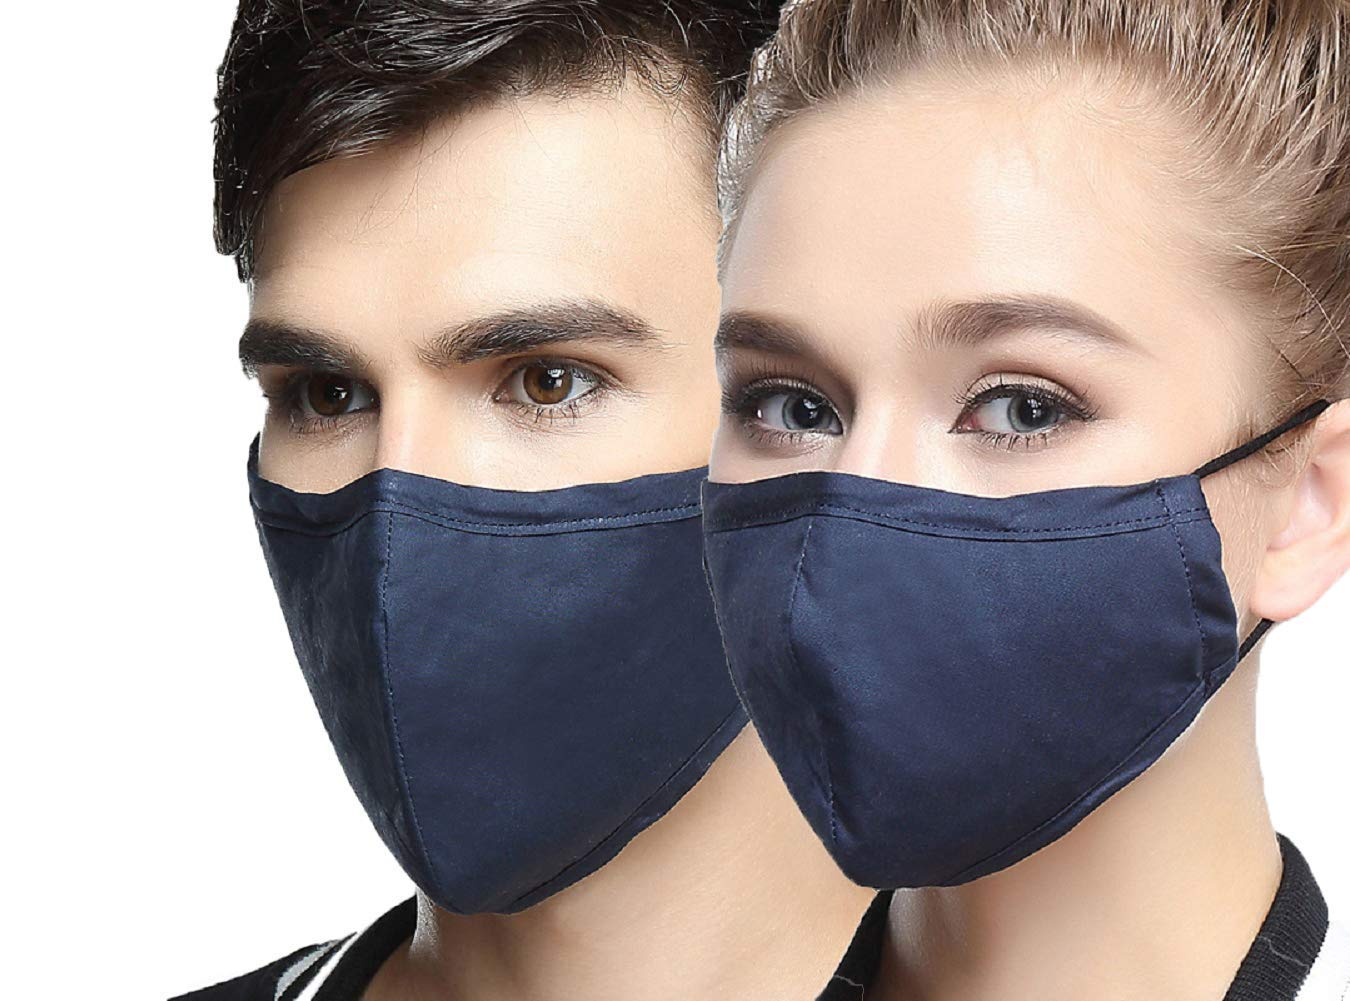 bc017b2c0d8 Get Quotations · AVIGOR N95 Dust Mask Anti Pollution Face Mask Washable  Antibacterial Cotton Mouth Mask (Blue)